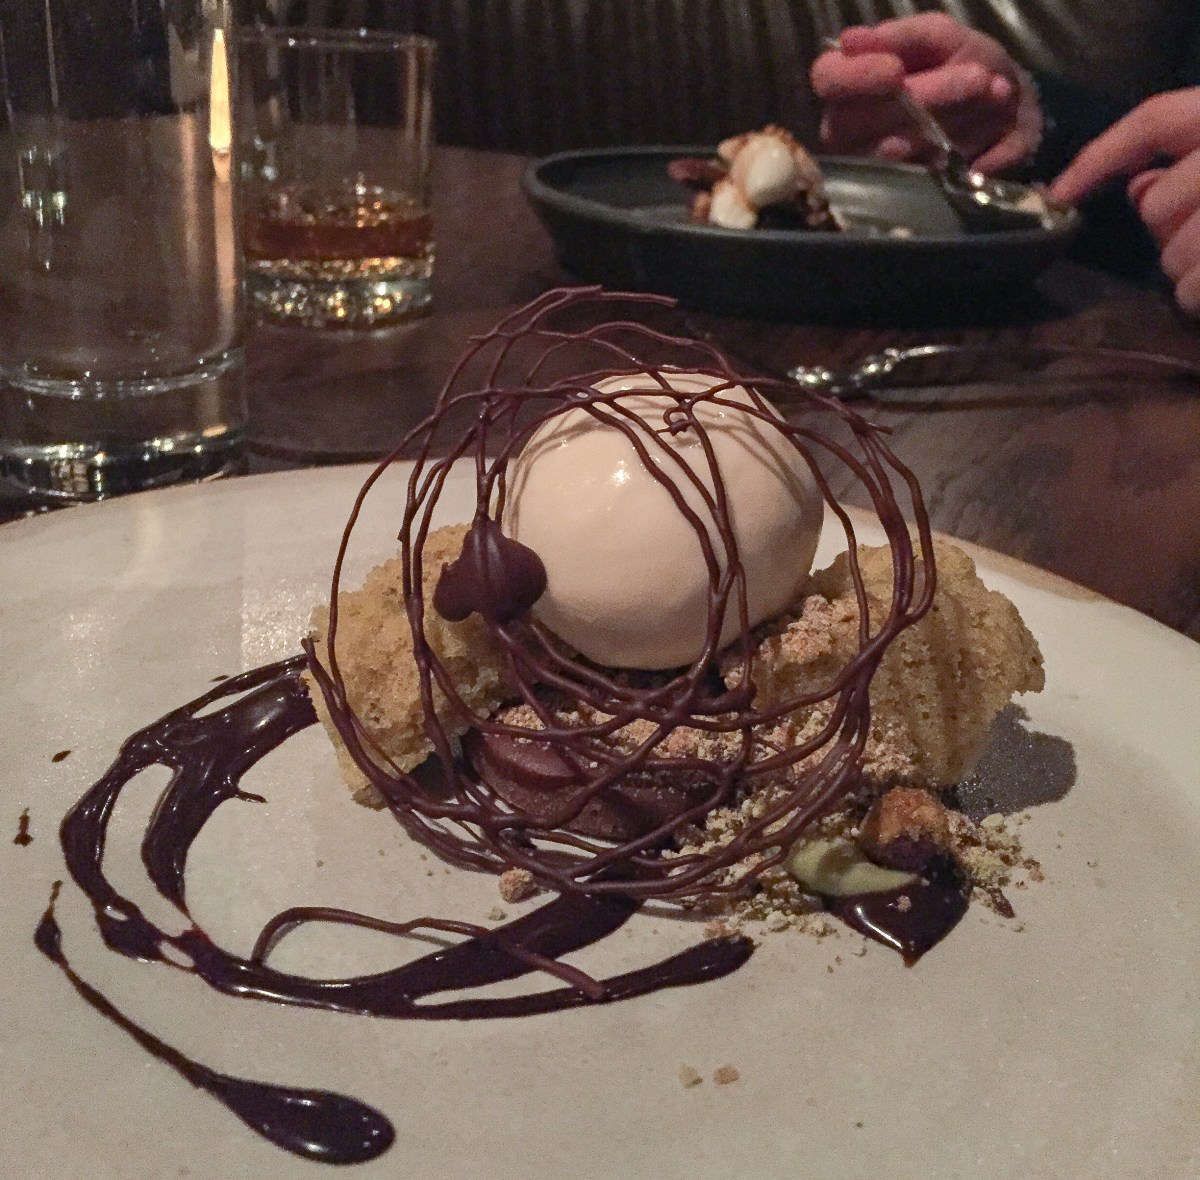 72 Hours in Chicago Dessert at Boka